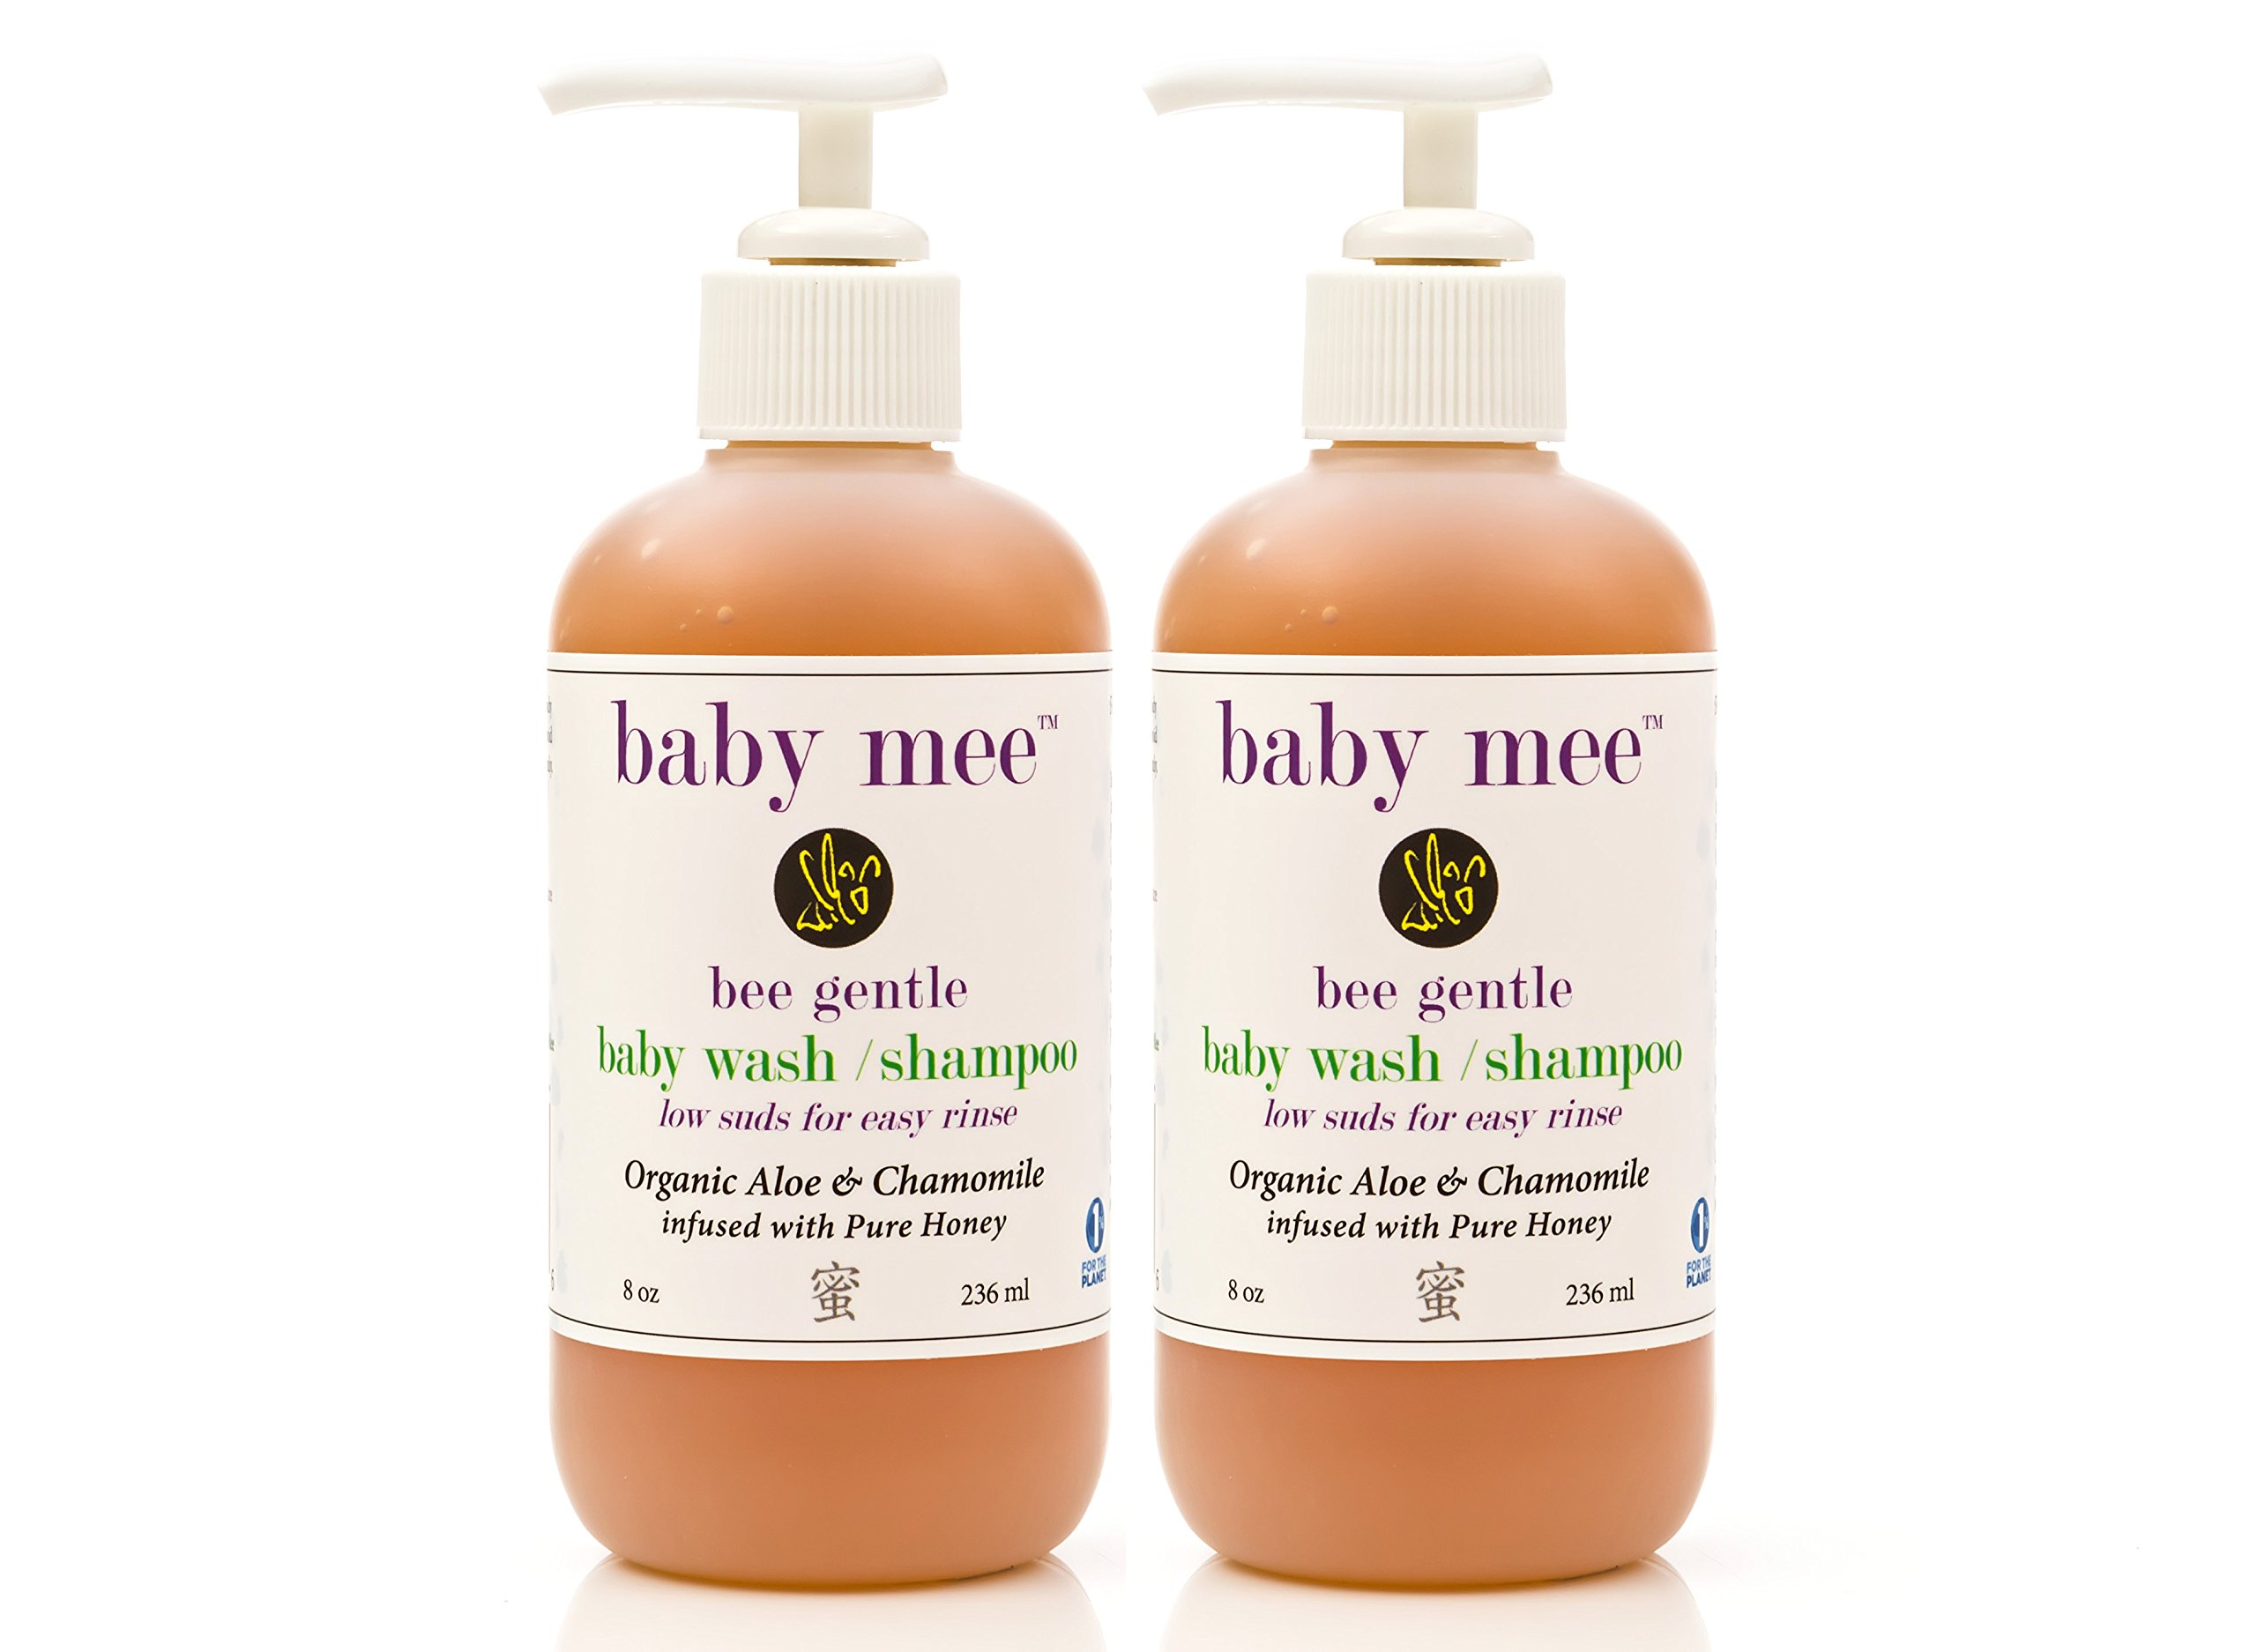 Kids Shampoo & Body Wash - Organic Aloe, Chamomile & Natural Honey for Soothing Eczema, Cradle Cap, and Dry, Itchy, Sensitive Skin & Scalp – Tear Free - for Babies, Toddlers & Big Kids - 2 Pack